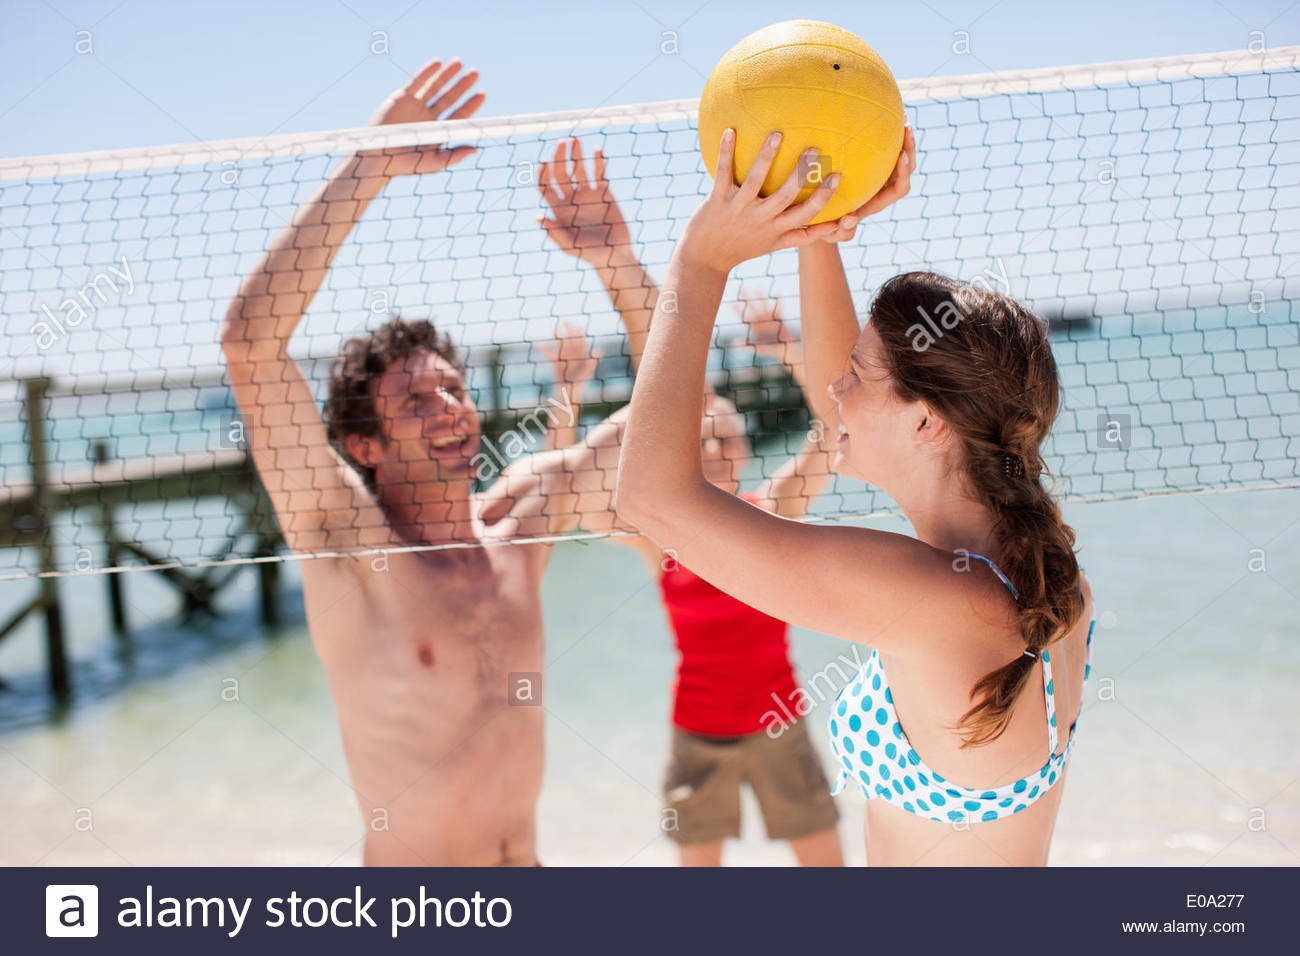 Les amis jouer au volley-ball sur plage Photo Stock